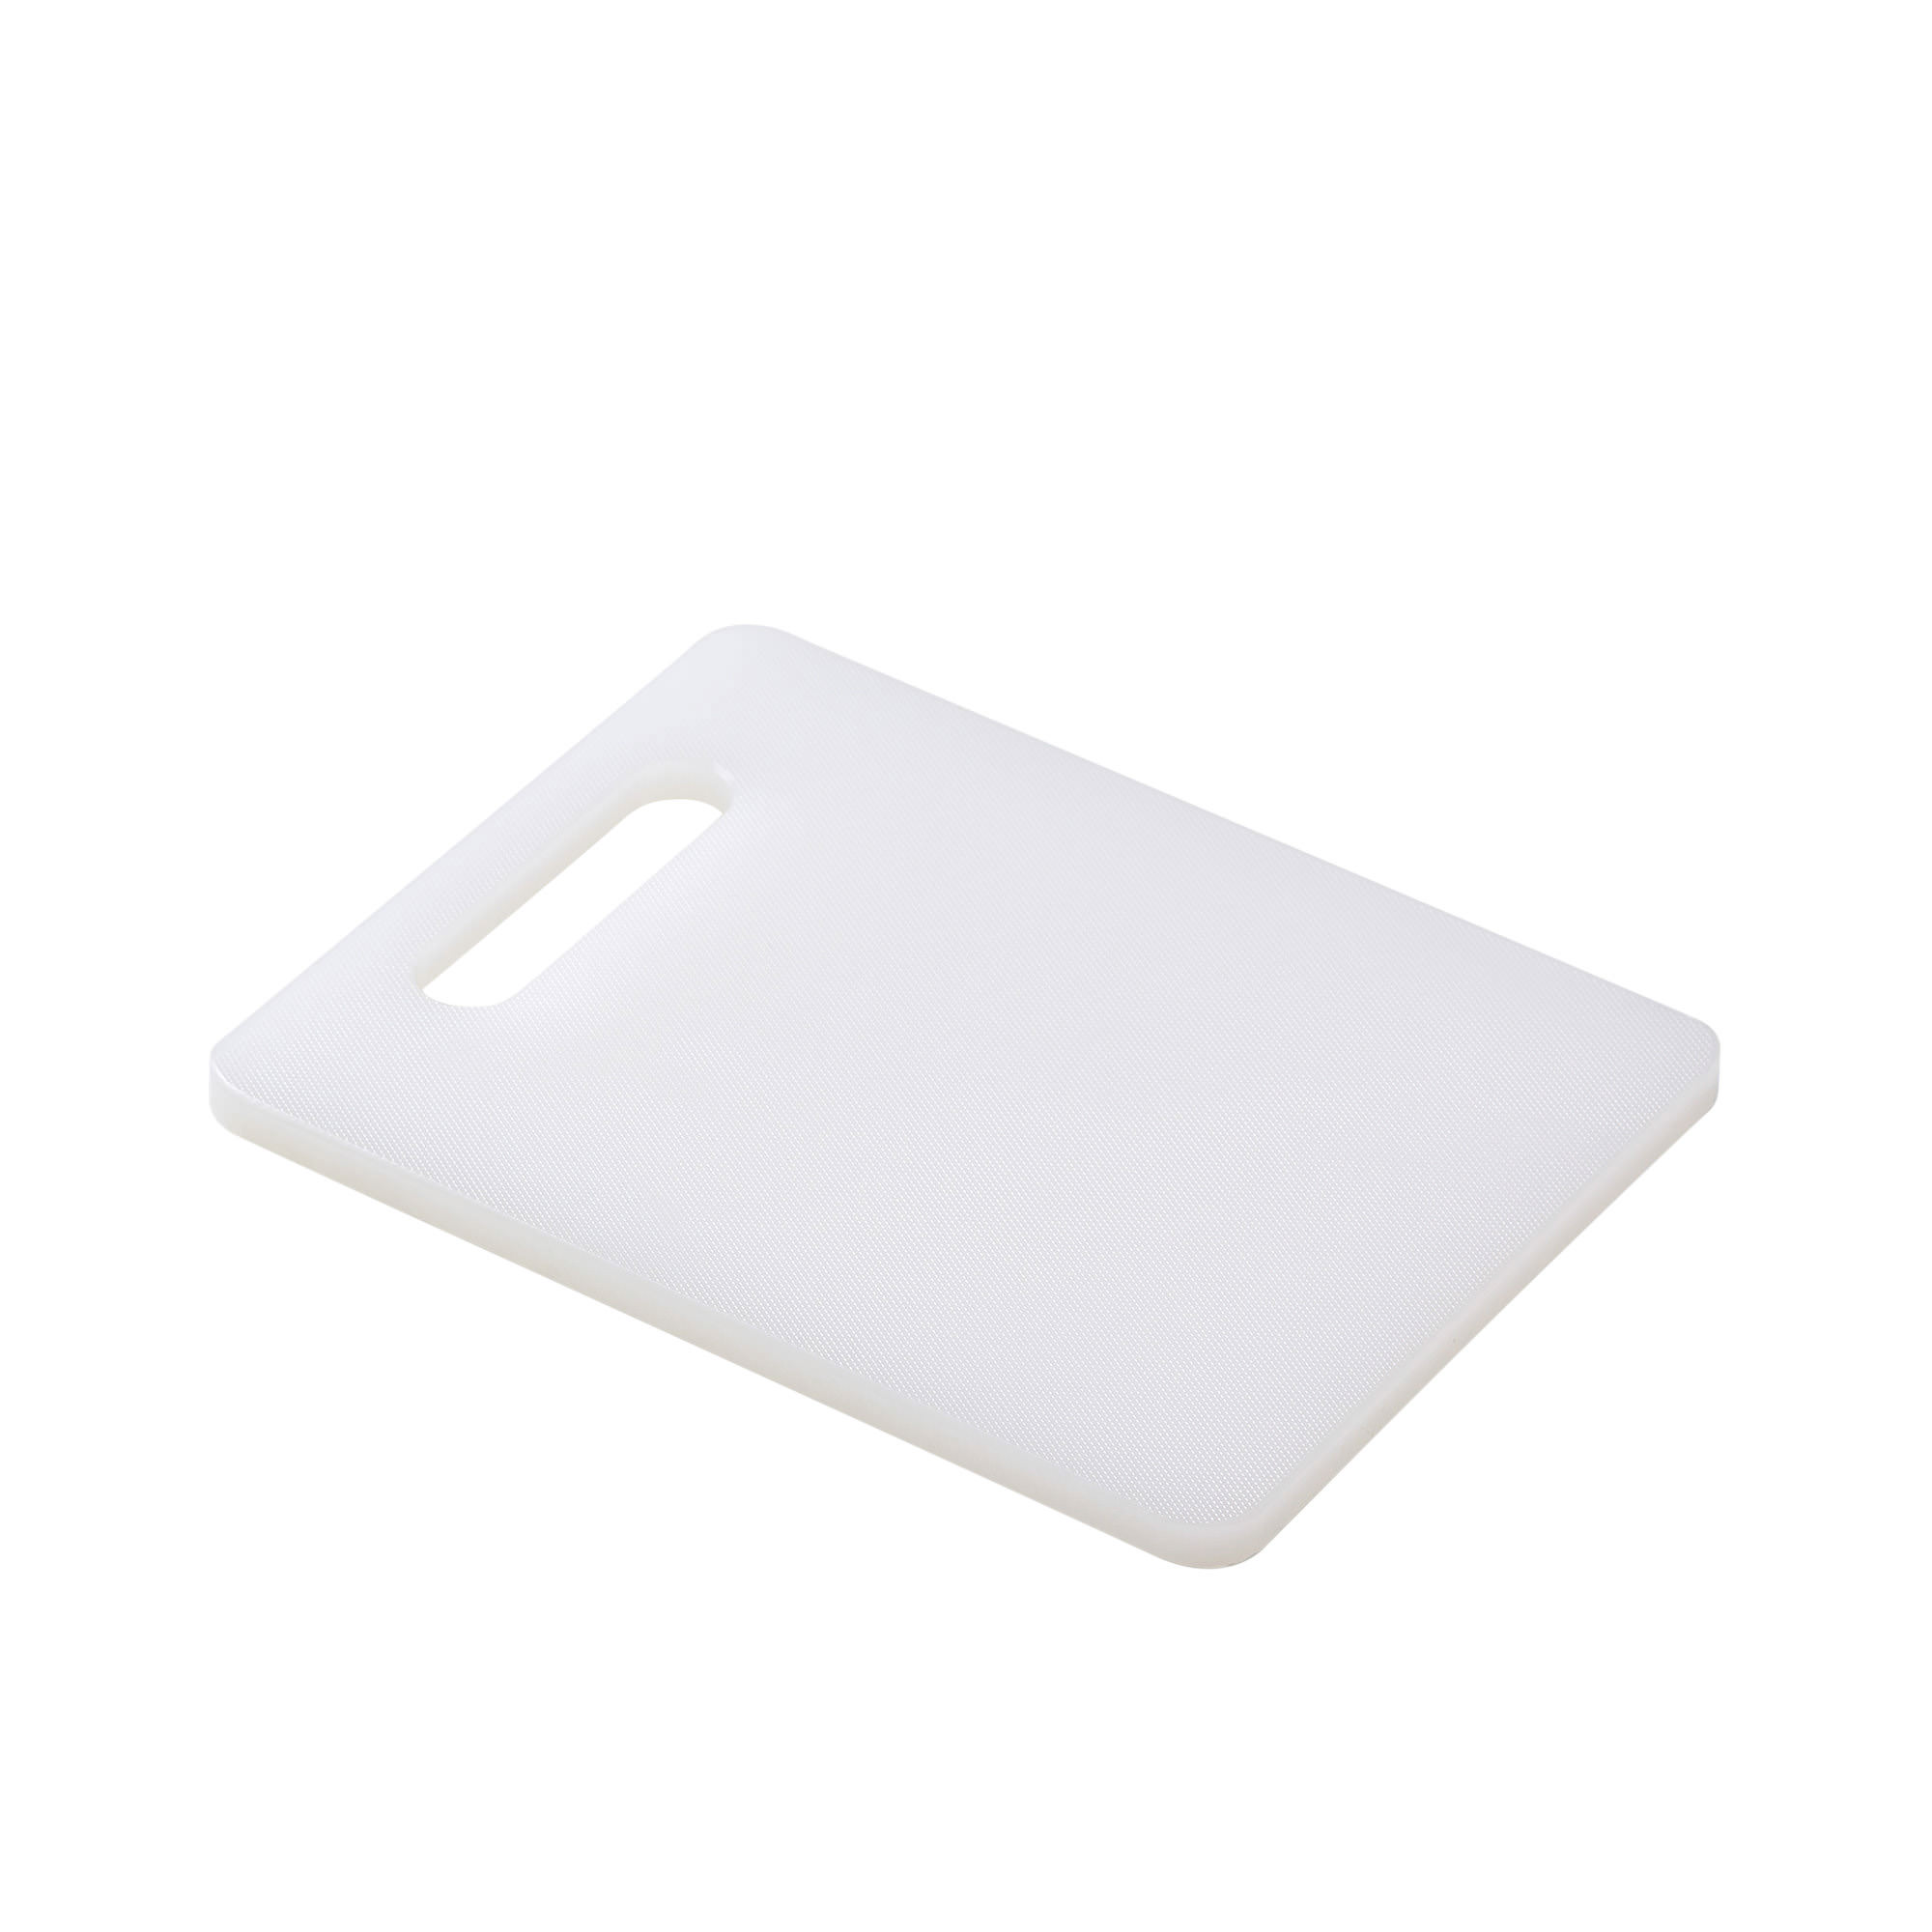 Kitchen Pro Classic Cutting Board 25x20x1.2cm White